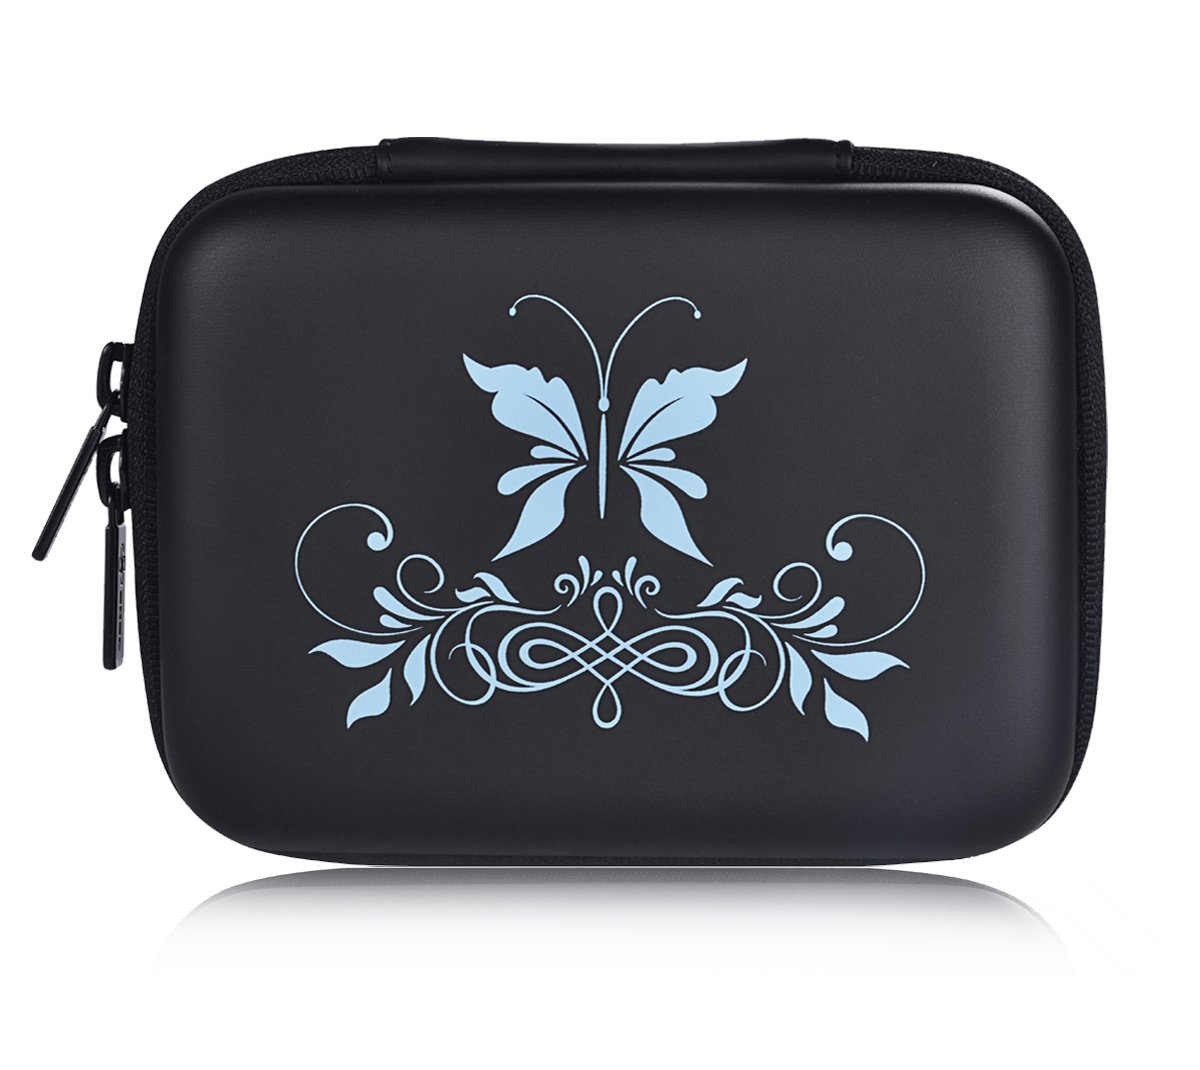 SHBC Essential Oil Case – storage carrying bag suitable for 5ml 10ml 15ml roller Bottles-portable Handle bag for travel and home-perfect for doTerra and Young Living Oil (10 bottles, Blue Butterfly) by SHBC (Image #1)